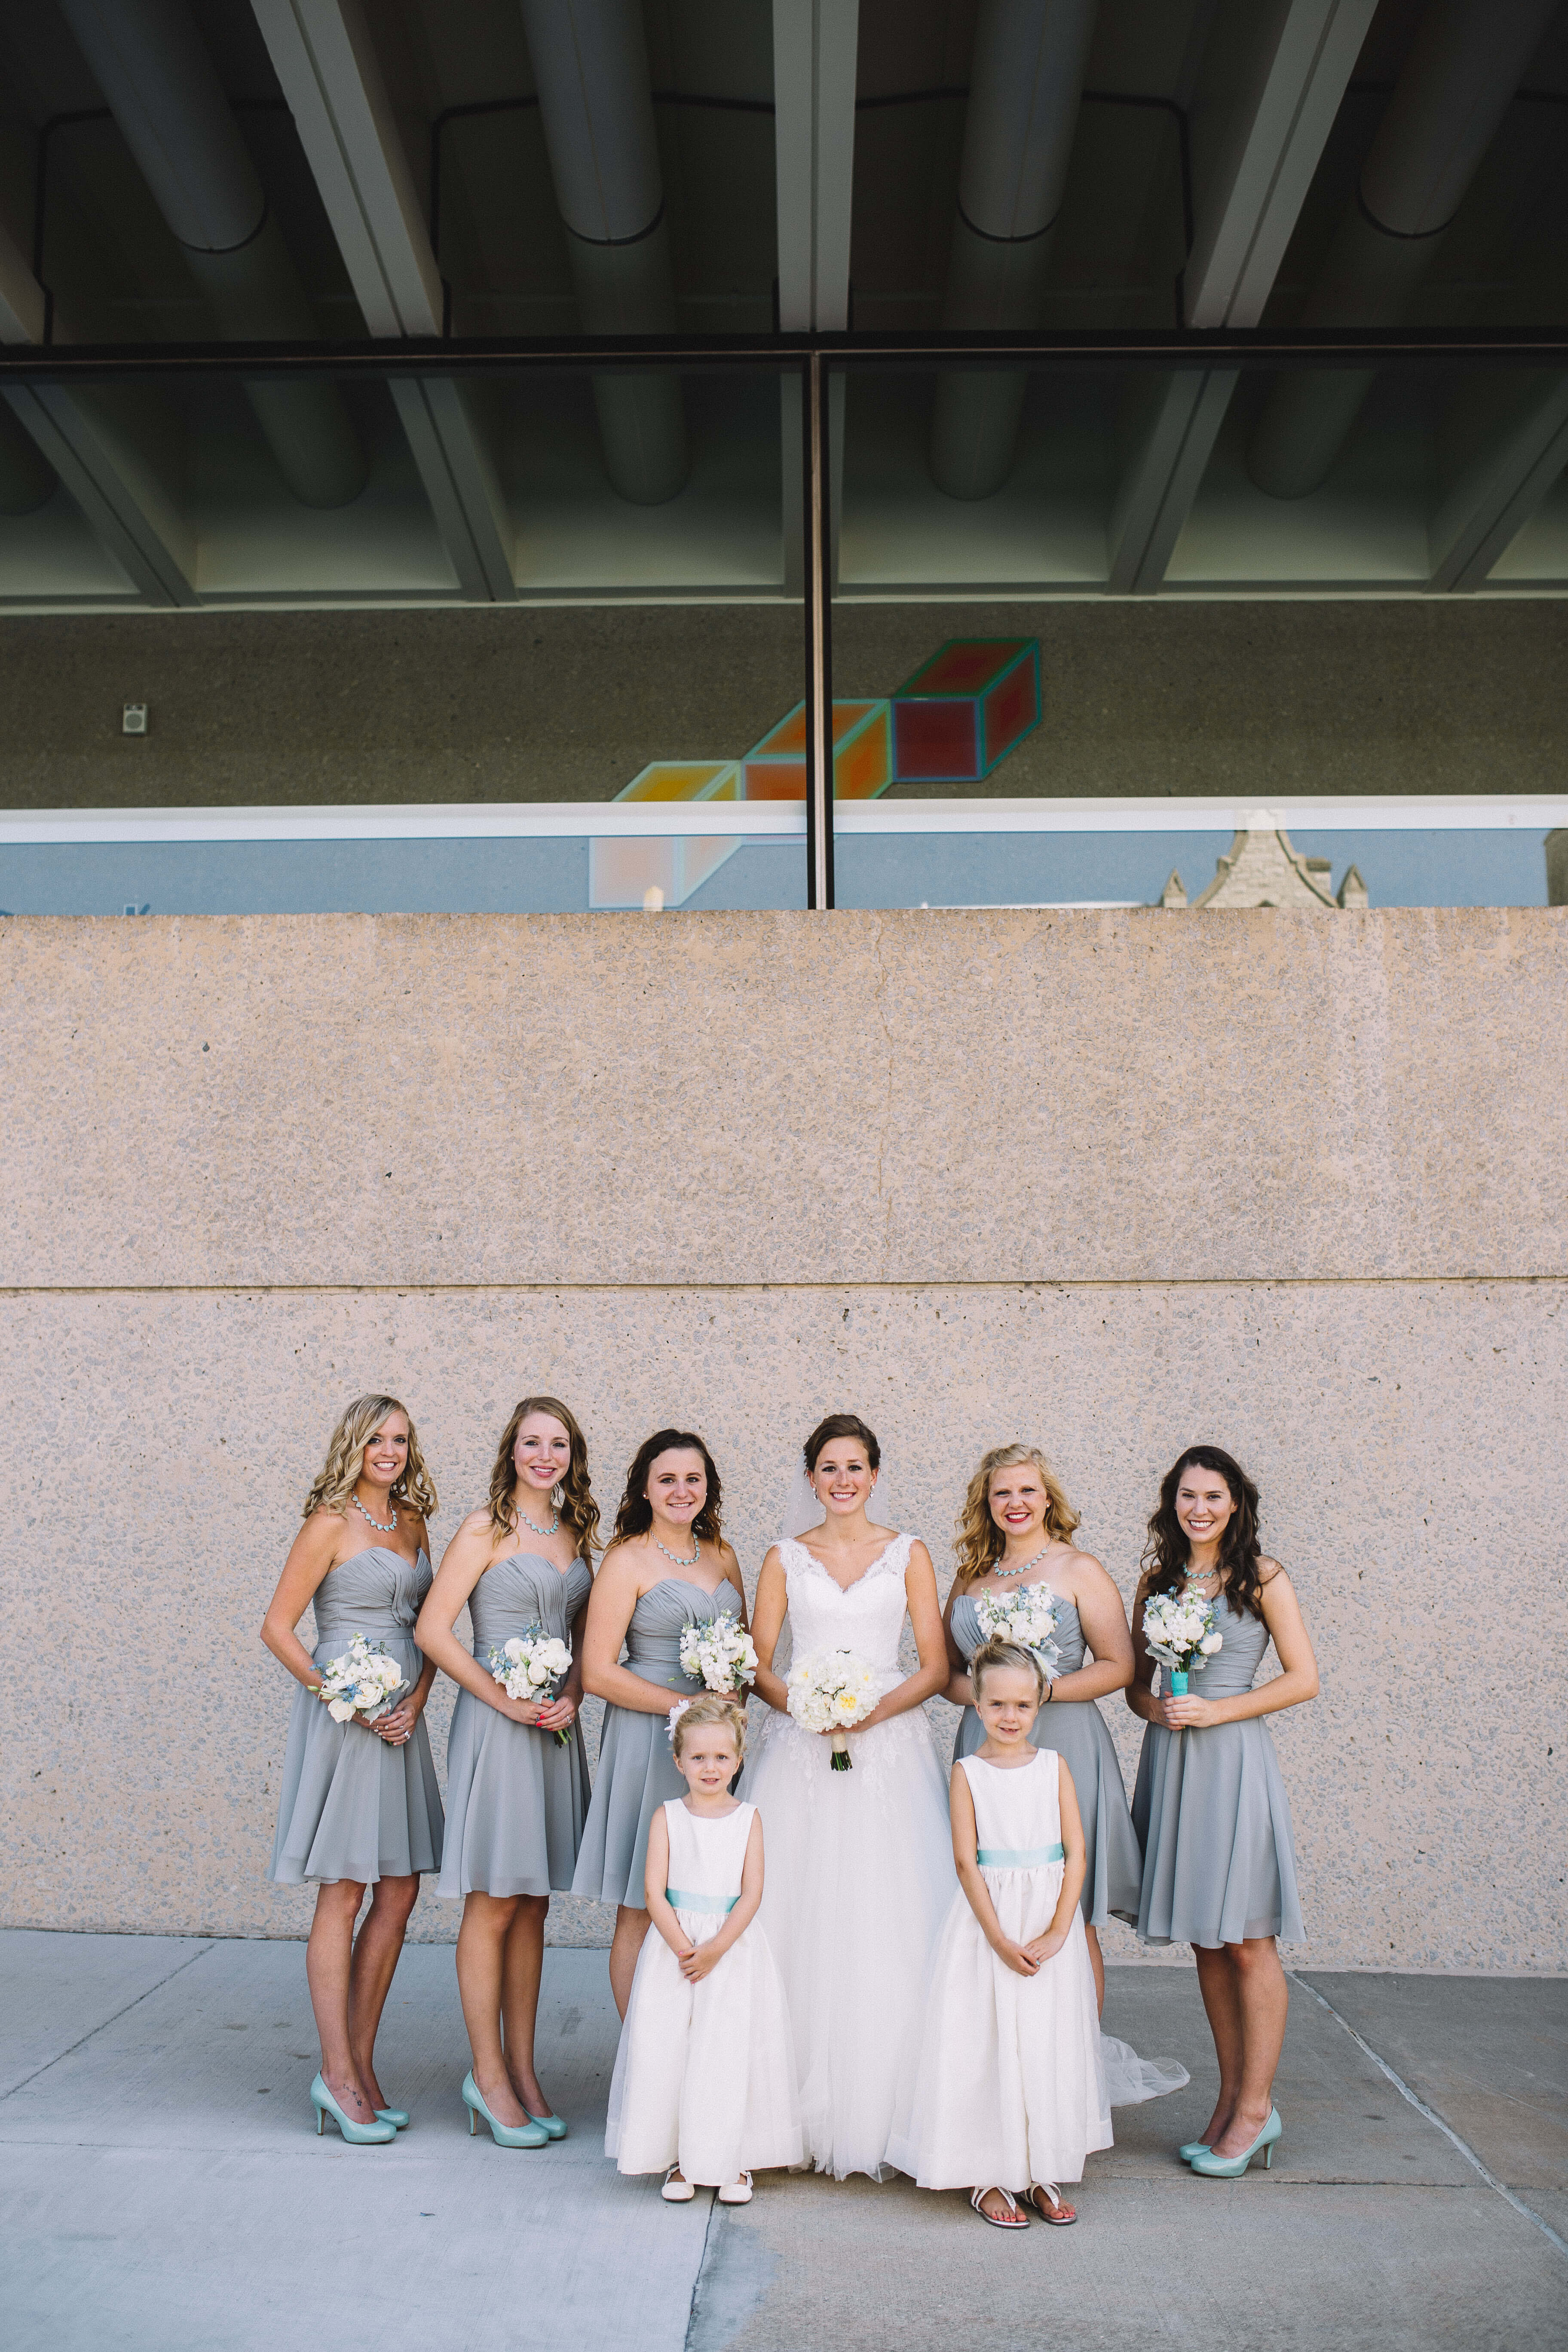 maahs_wedding-84-(ZF-3535-39624-1-001)